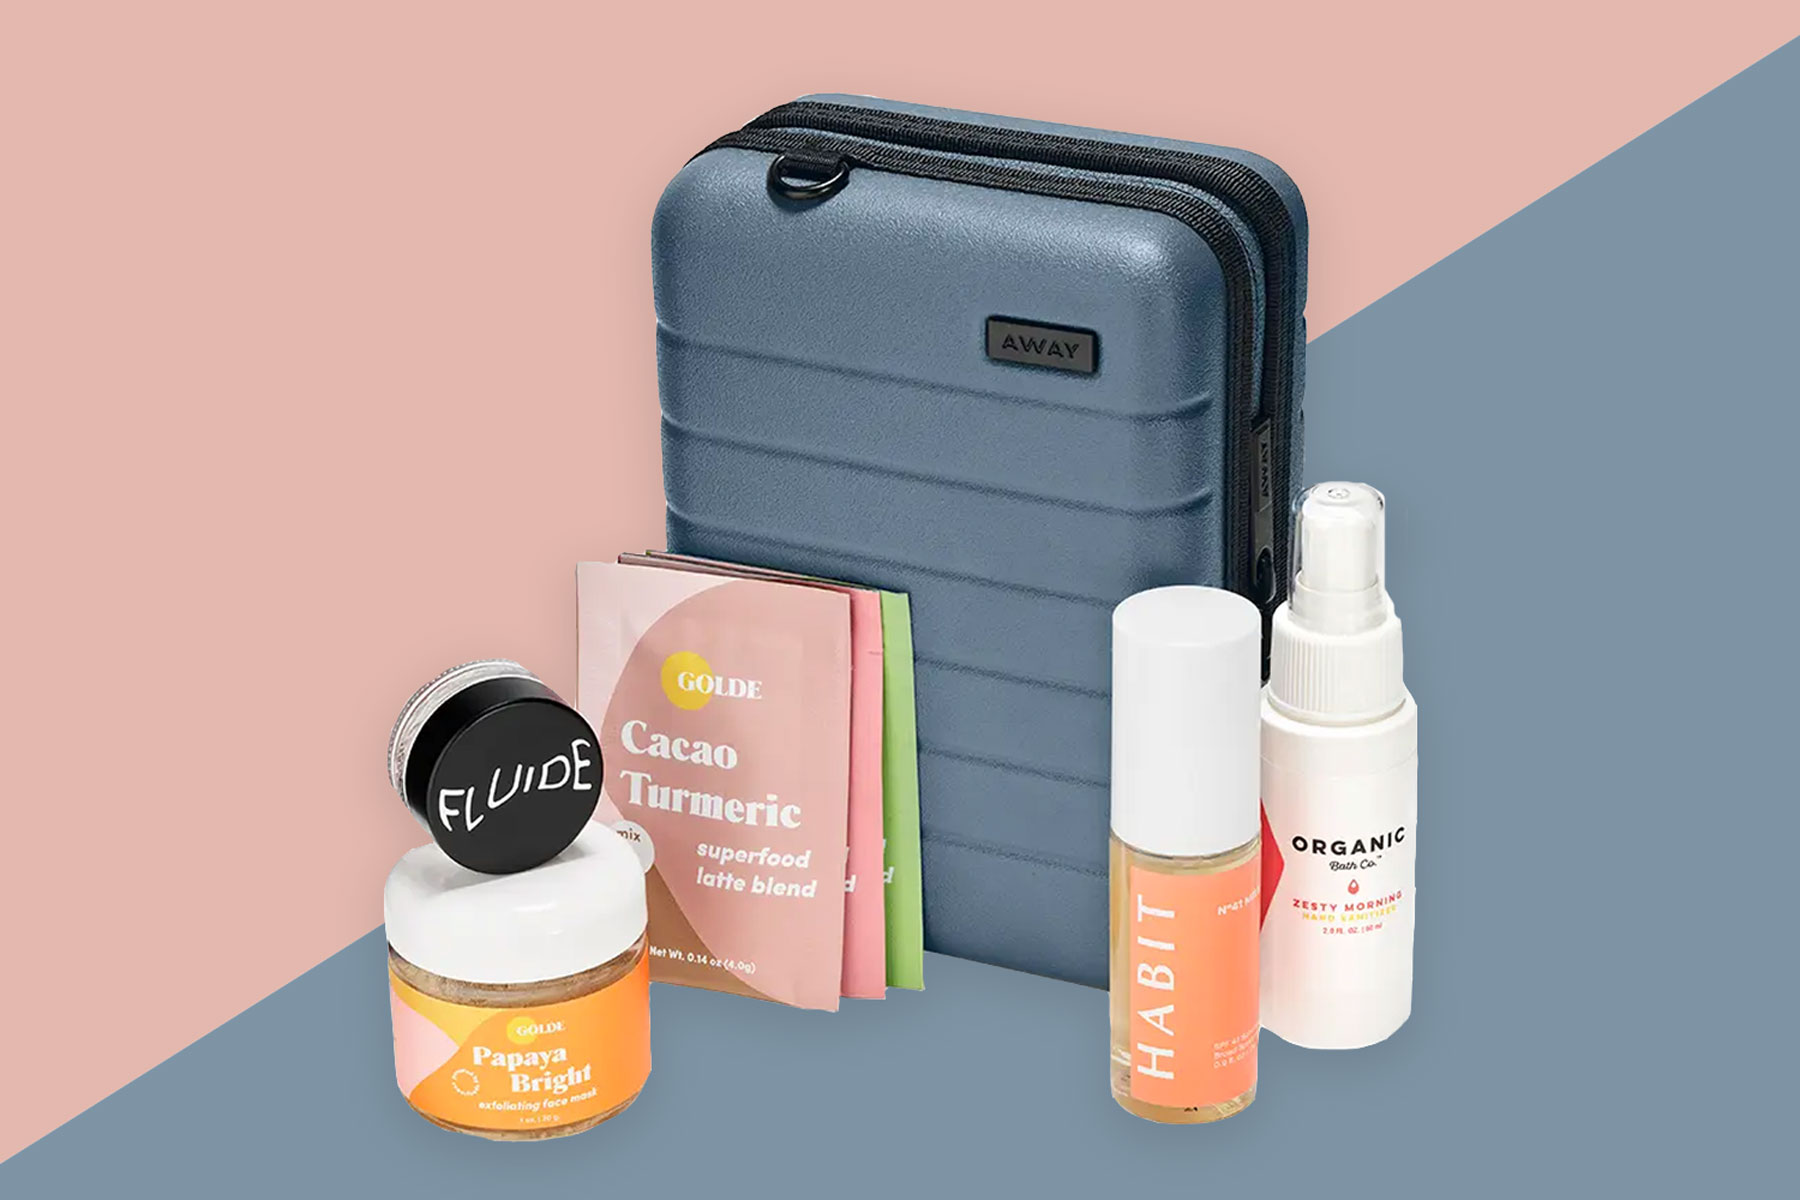 Away mini suitcase with wellness and skincare products